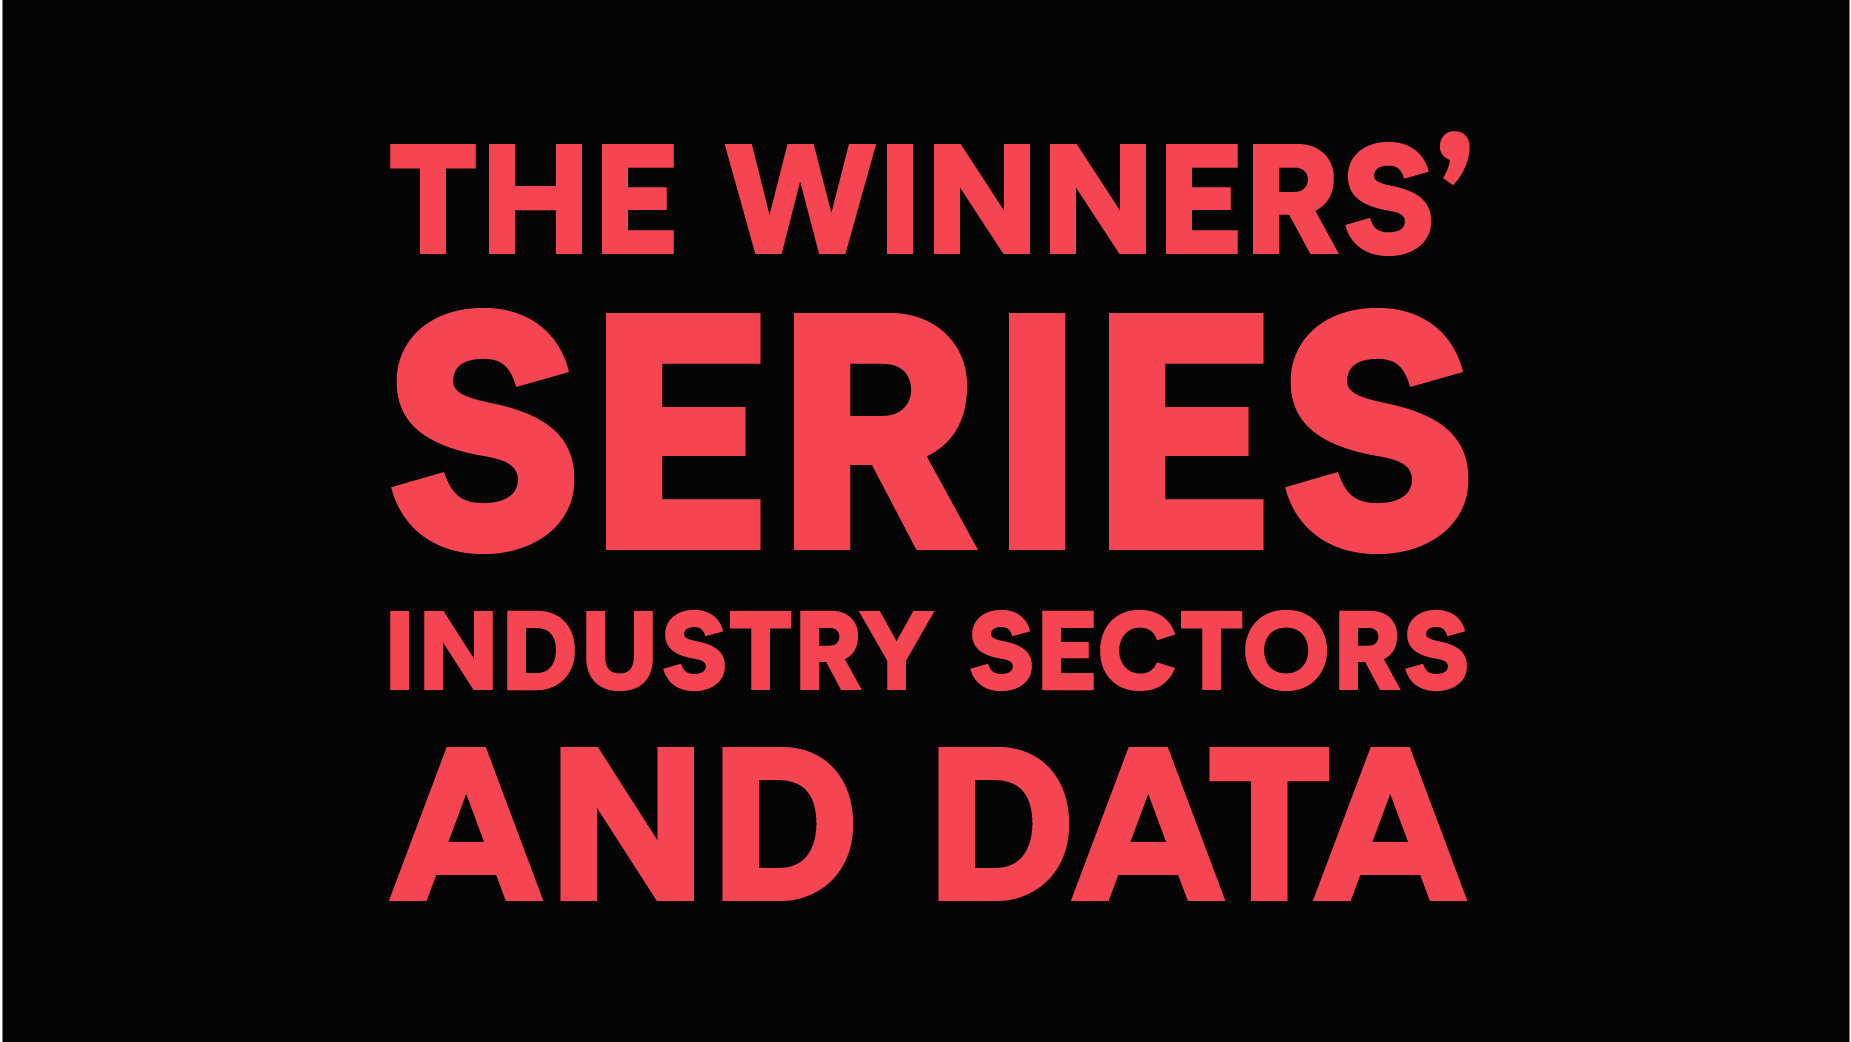 The-winners-series-Industry-sectors-and-data_web.png